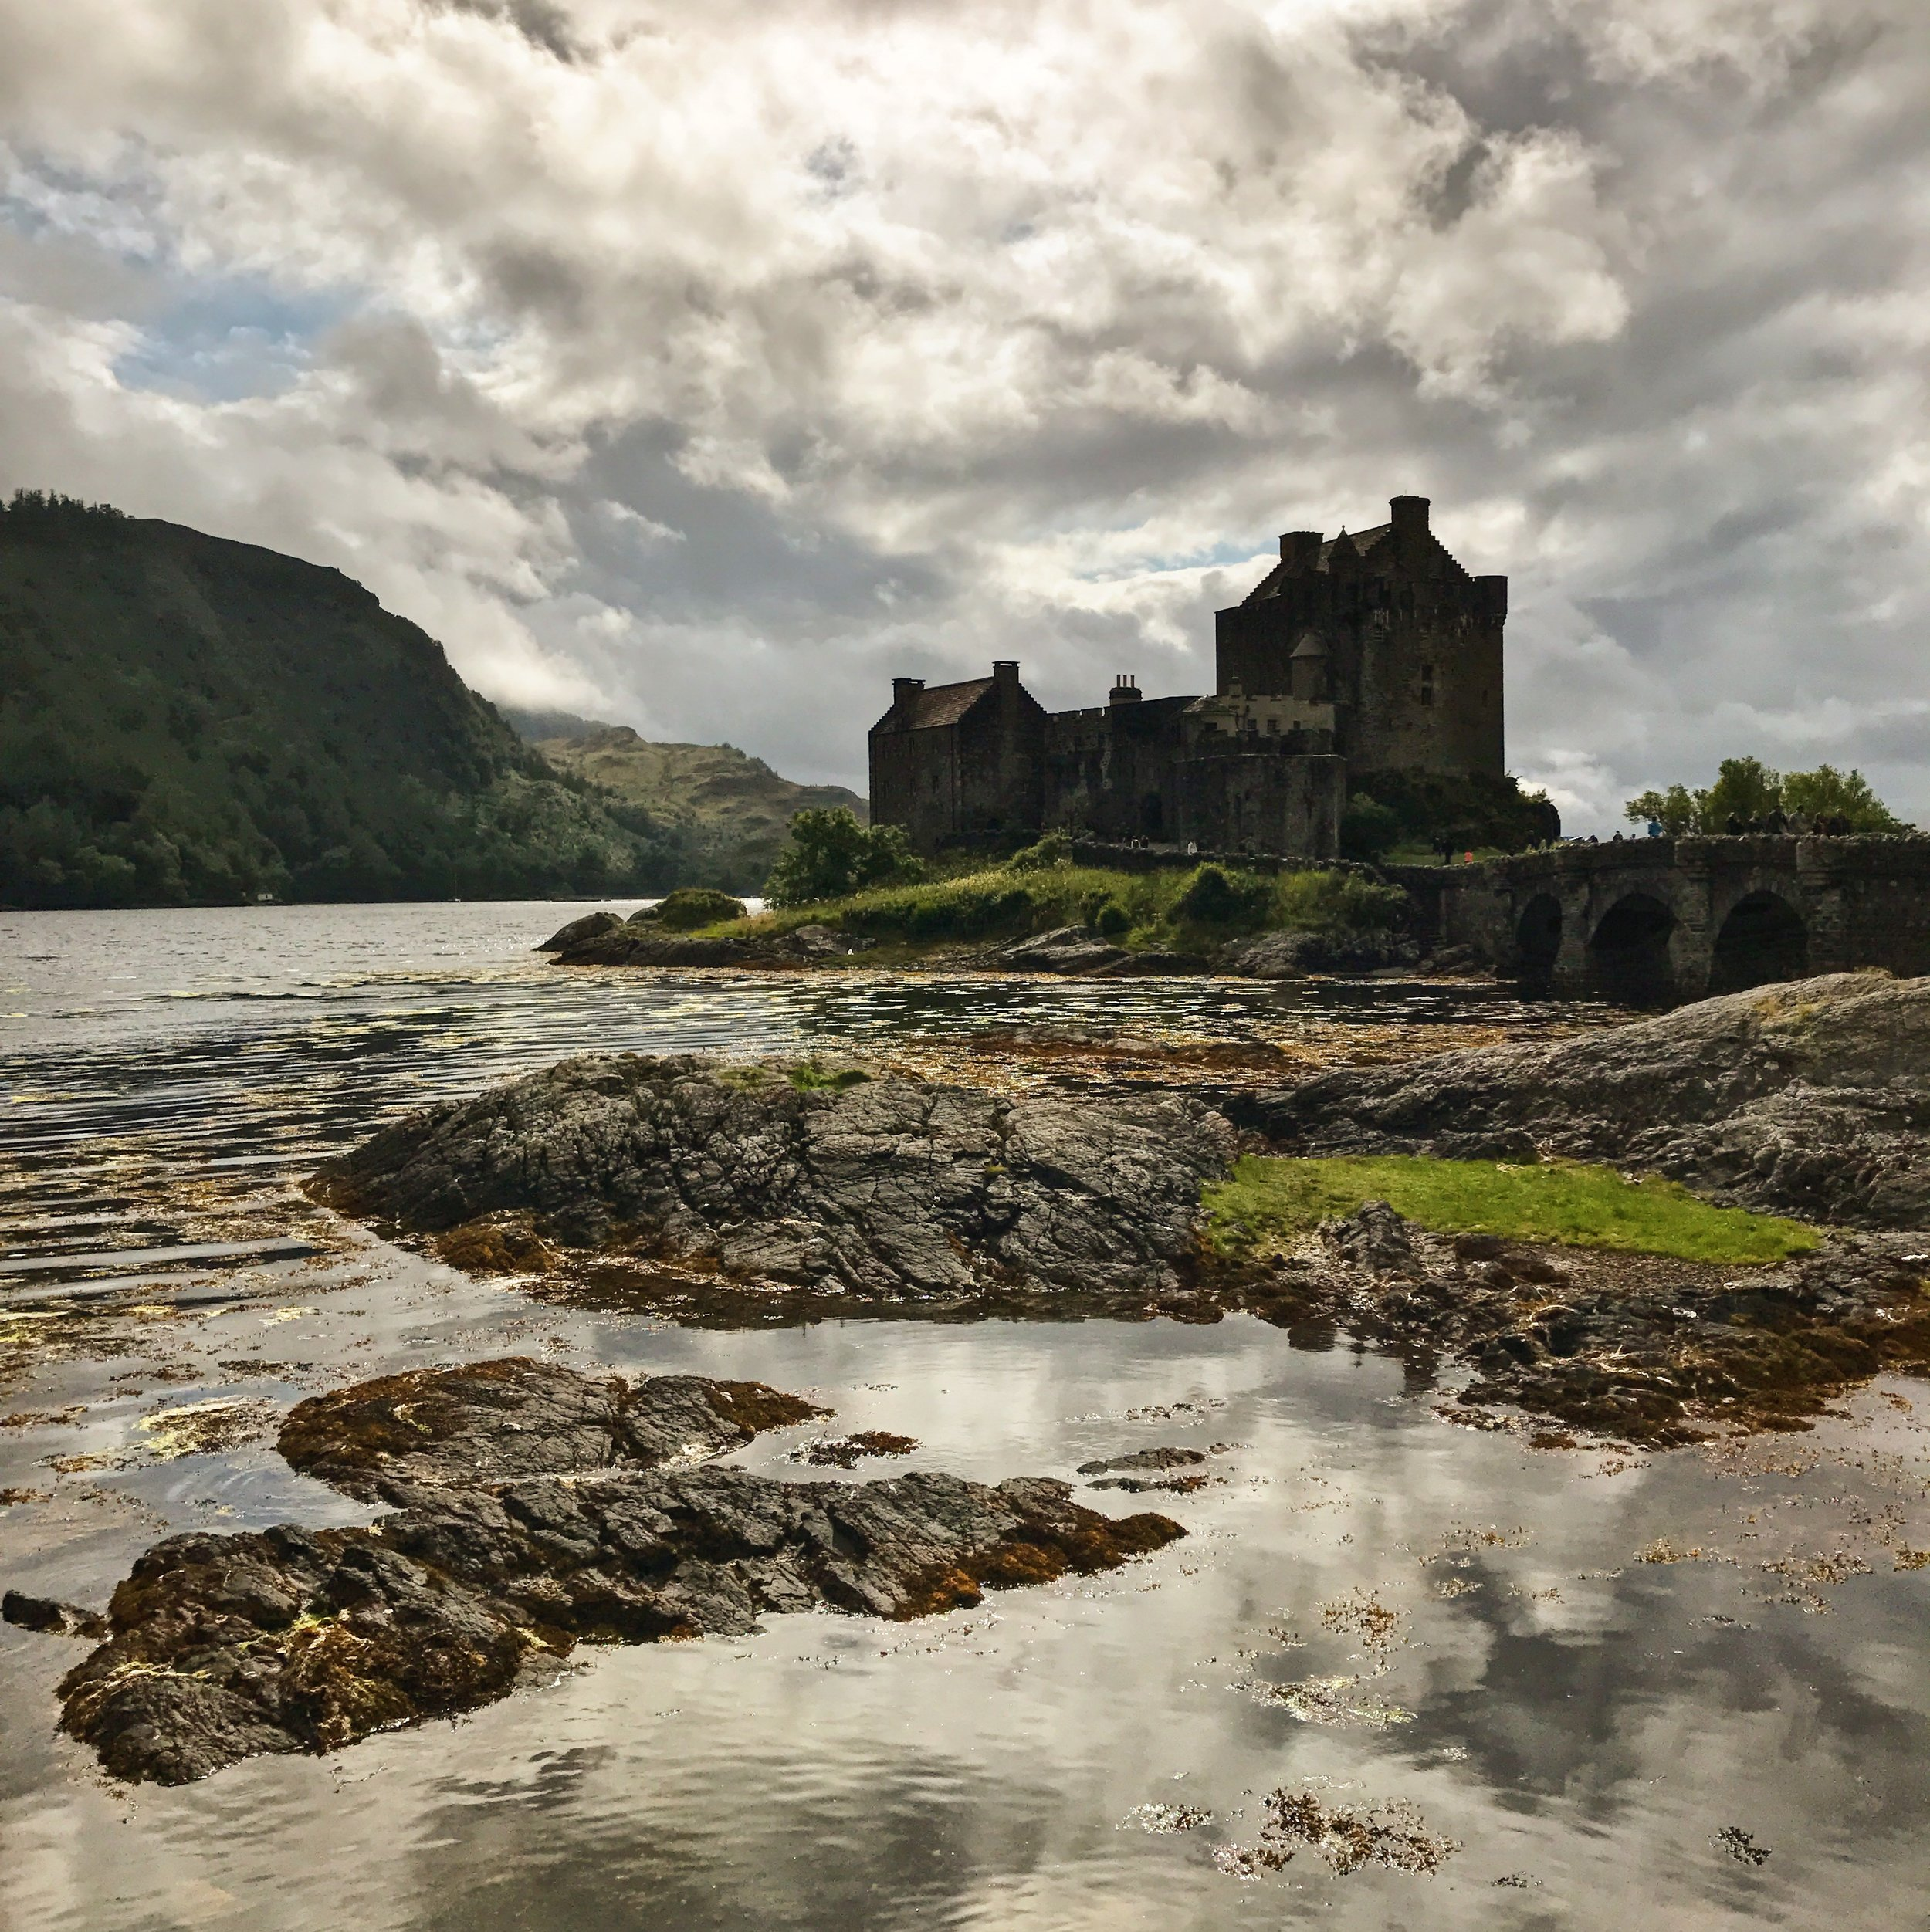 You can get married at Eileen Donan Castle for £1500, which sounds really cheap to me (though maybe my mind is warped from living in New York and London). Hands up if Scottish weddings make you think of Charlotte and Trey!